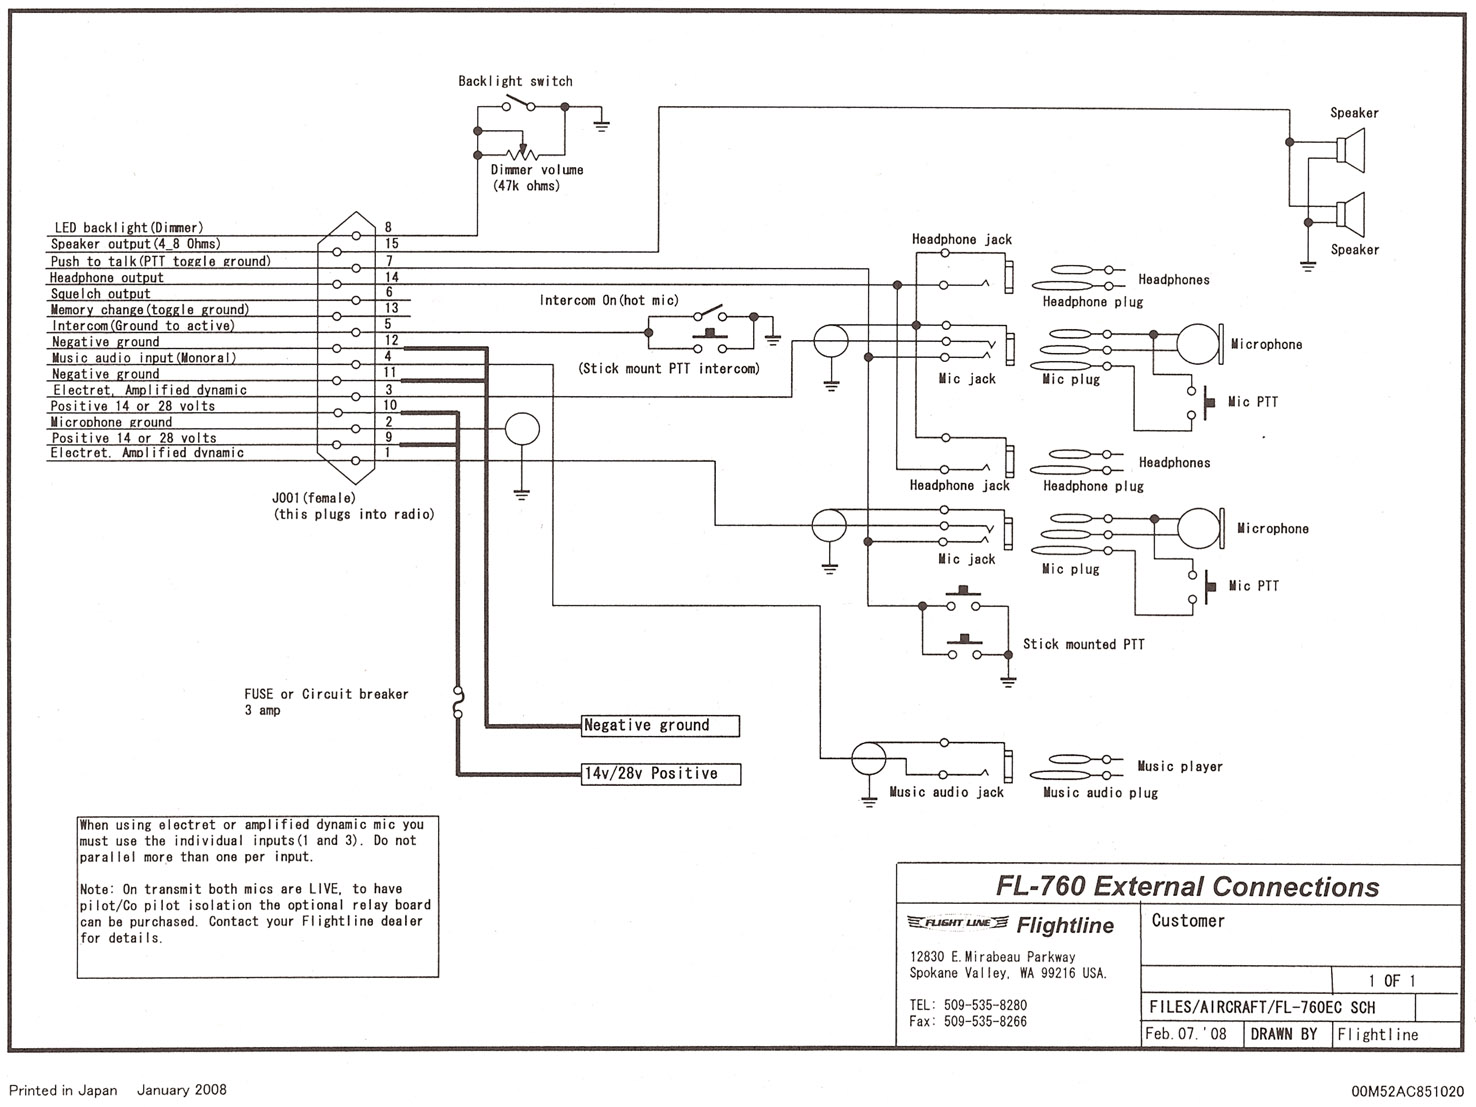 FL 760 Wiring Diagram cumulus soaring, inc flightline fl 760 wiring diagram at soozxer.org